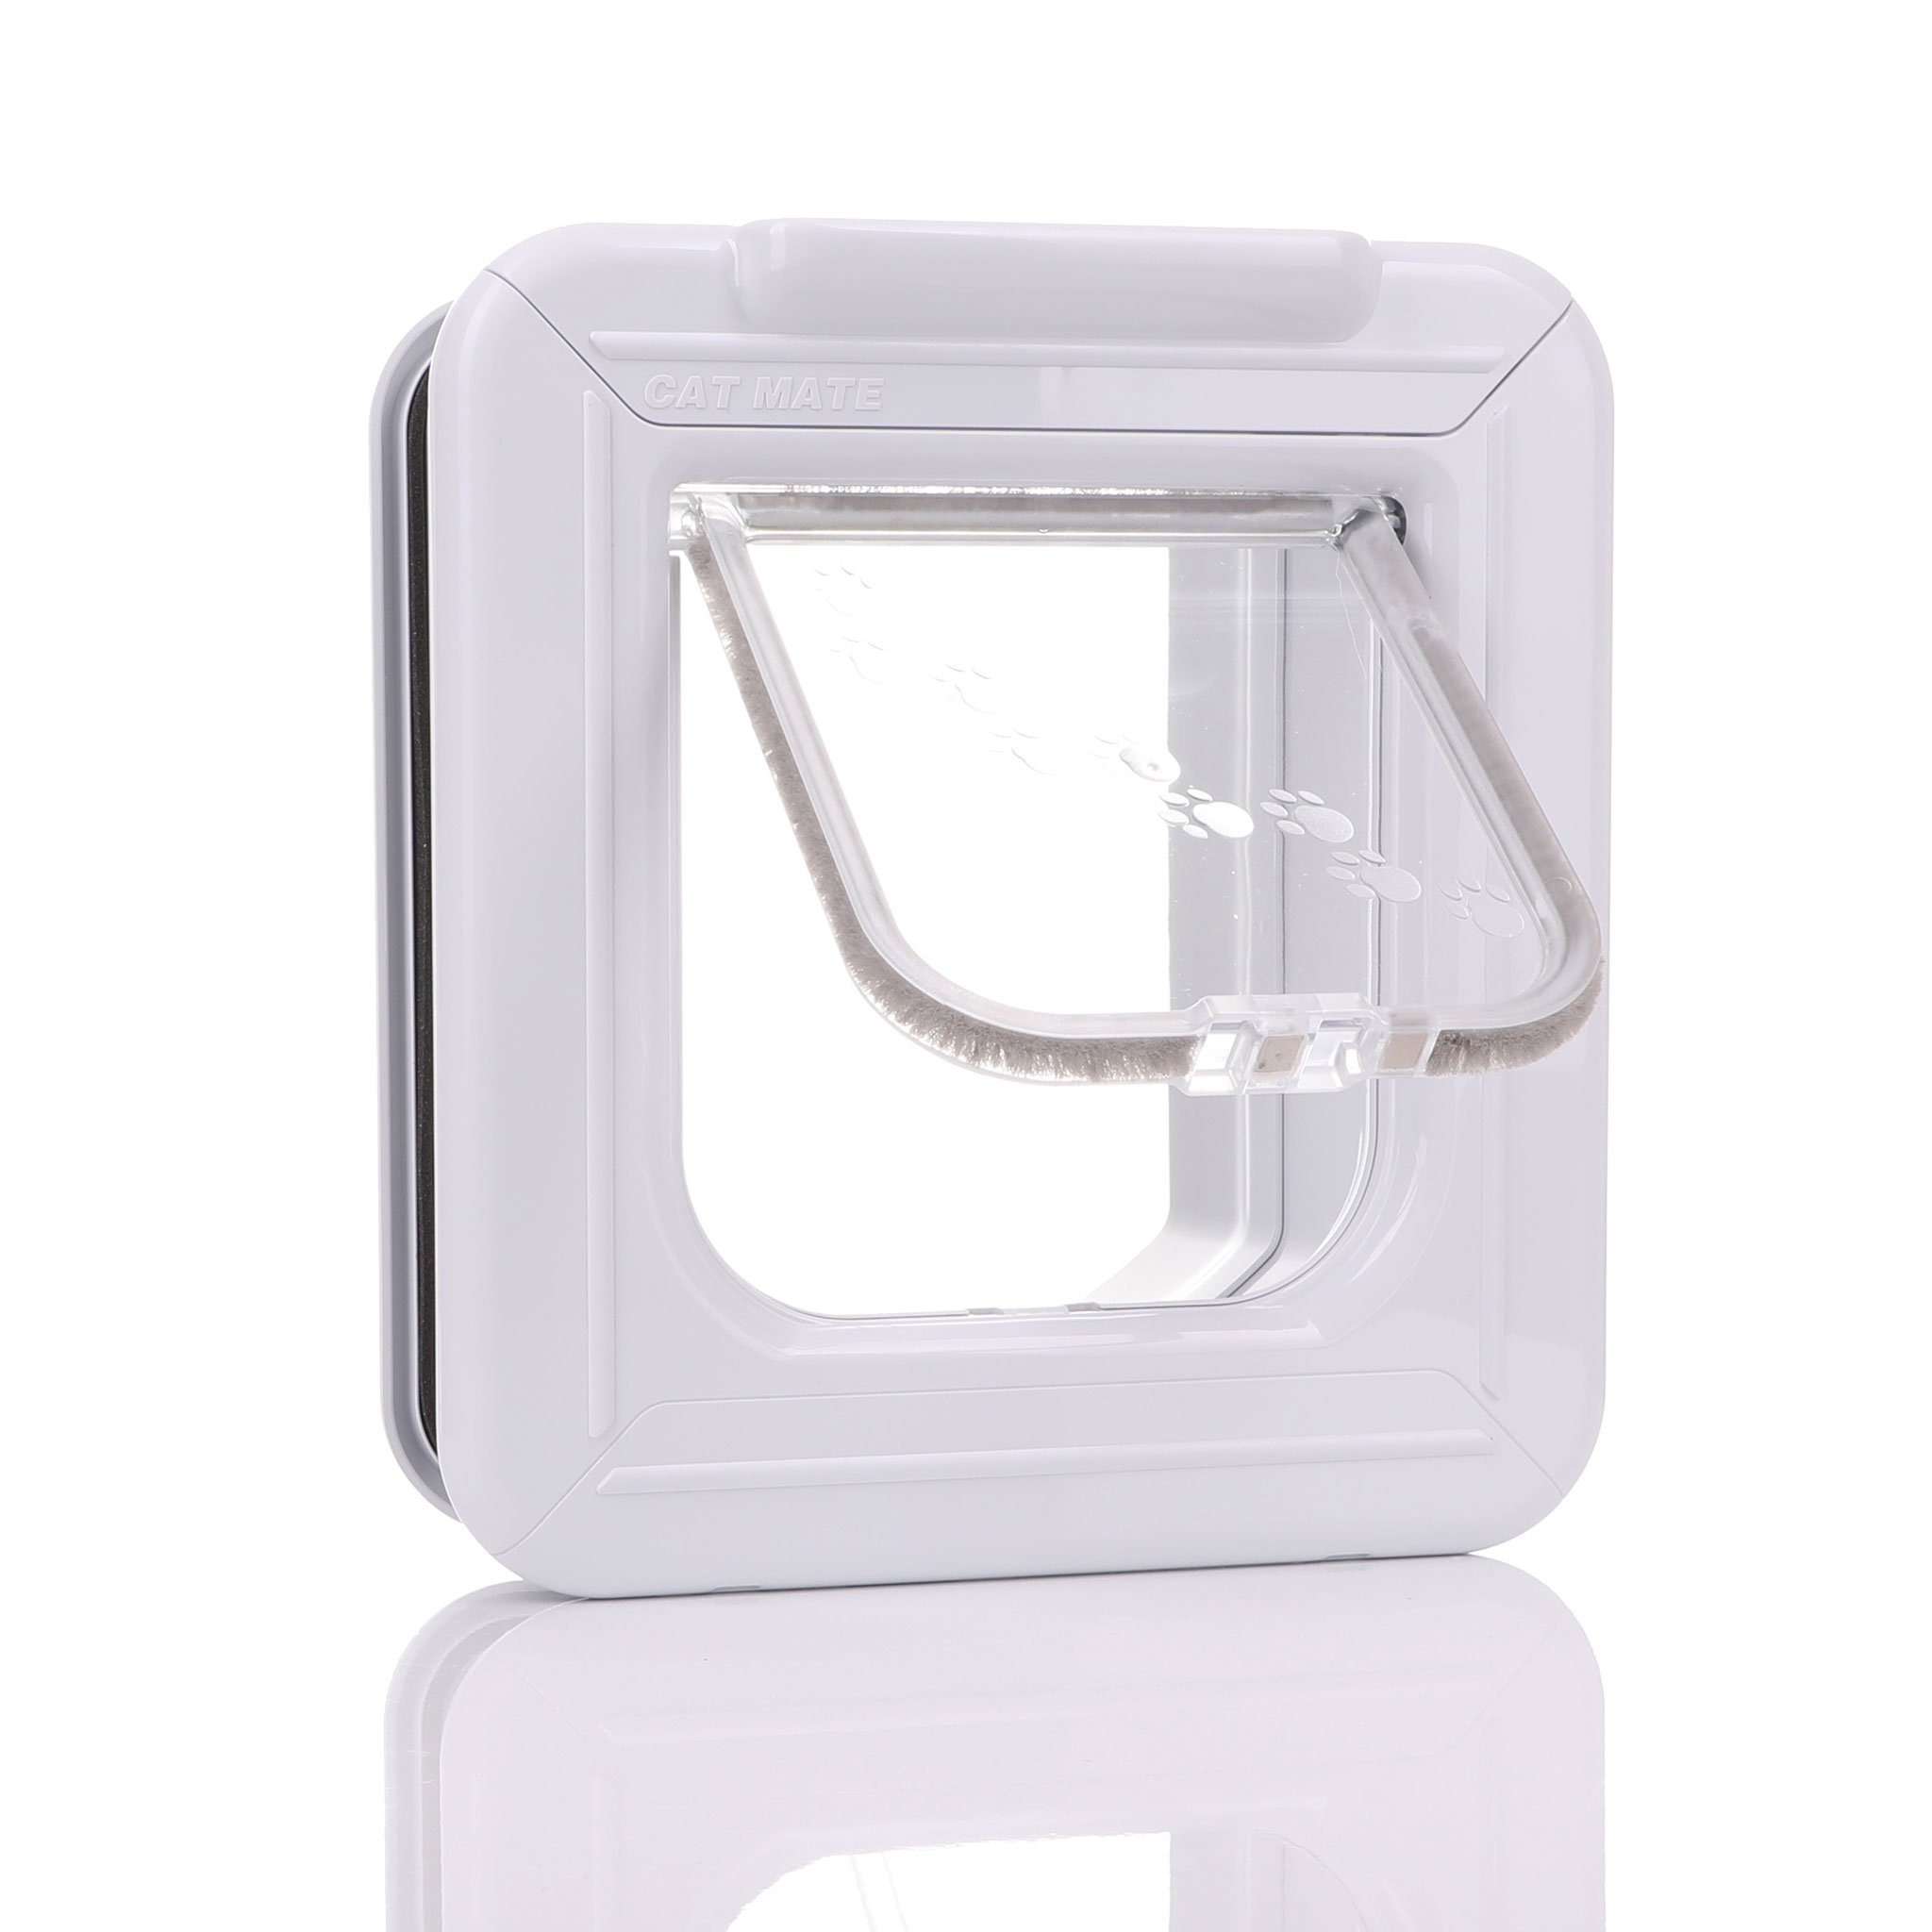 White frame with a clear flap designed with time control